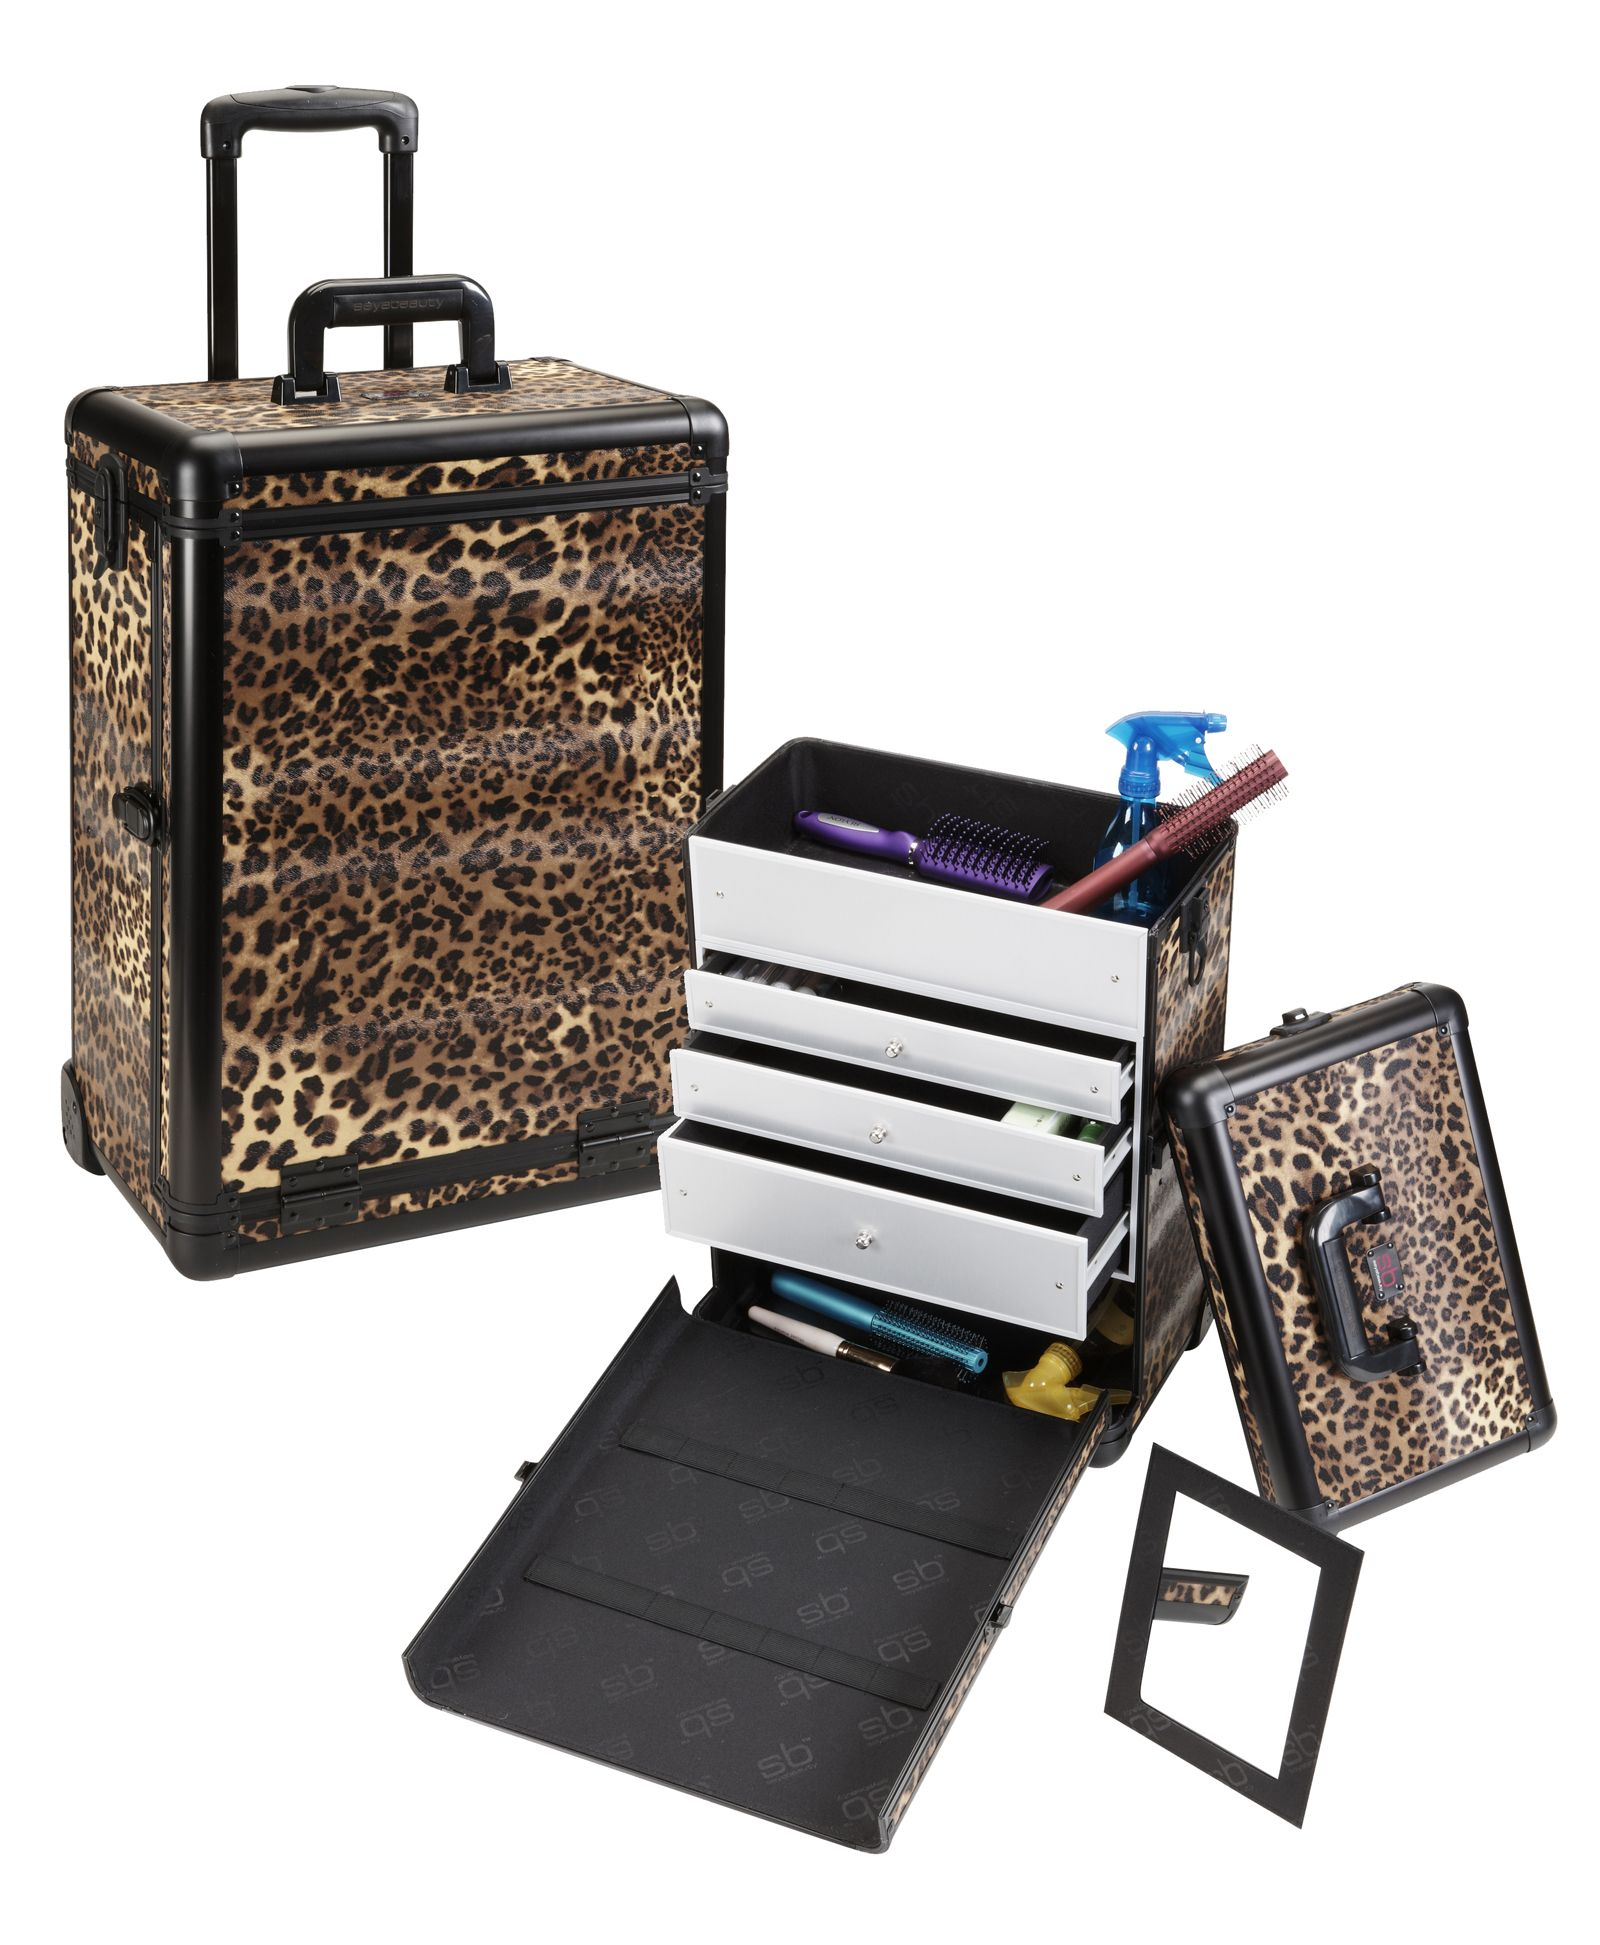 Professional Rolling Makeup Case w/ 3 Drawers Leopard